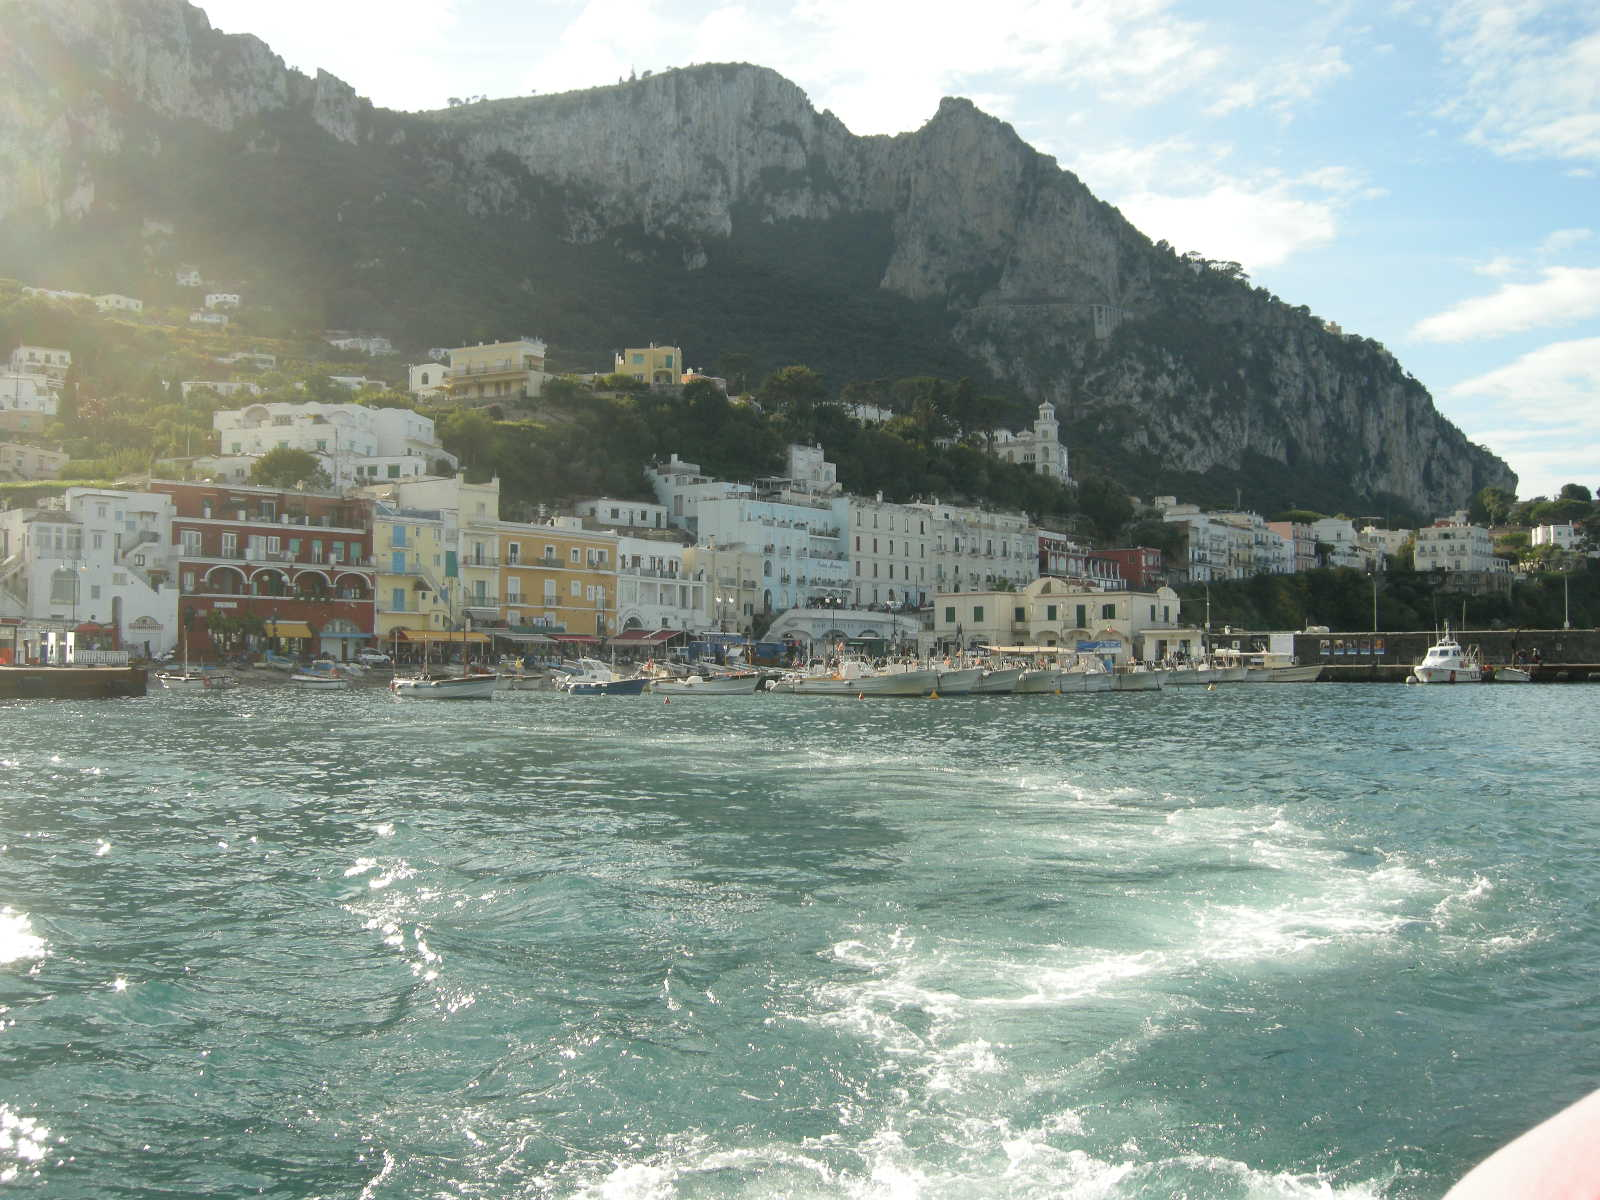 the island of Capri,Italy